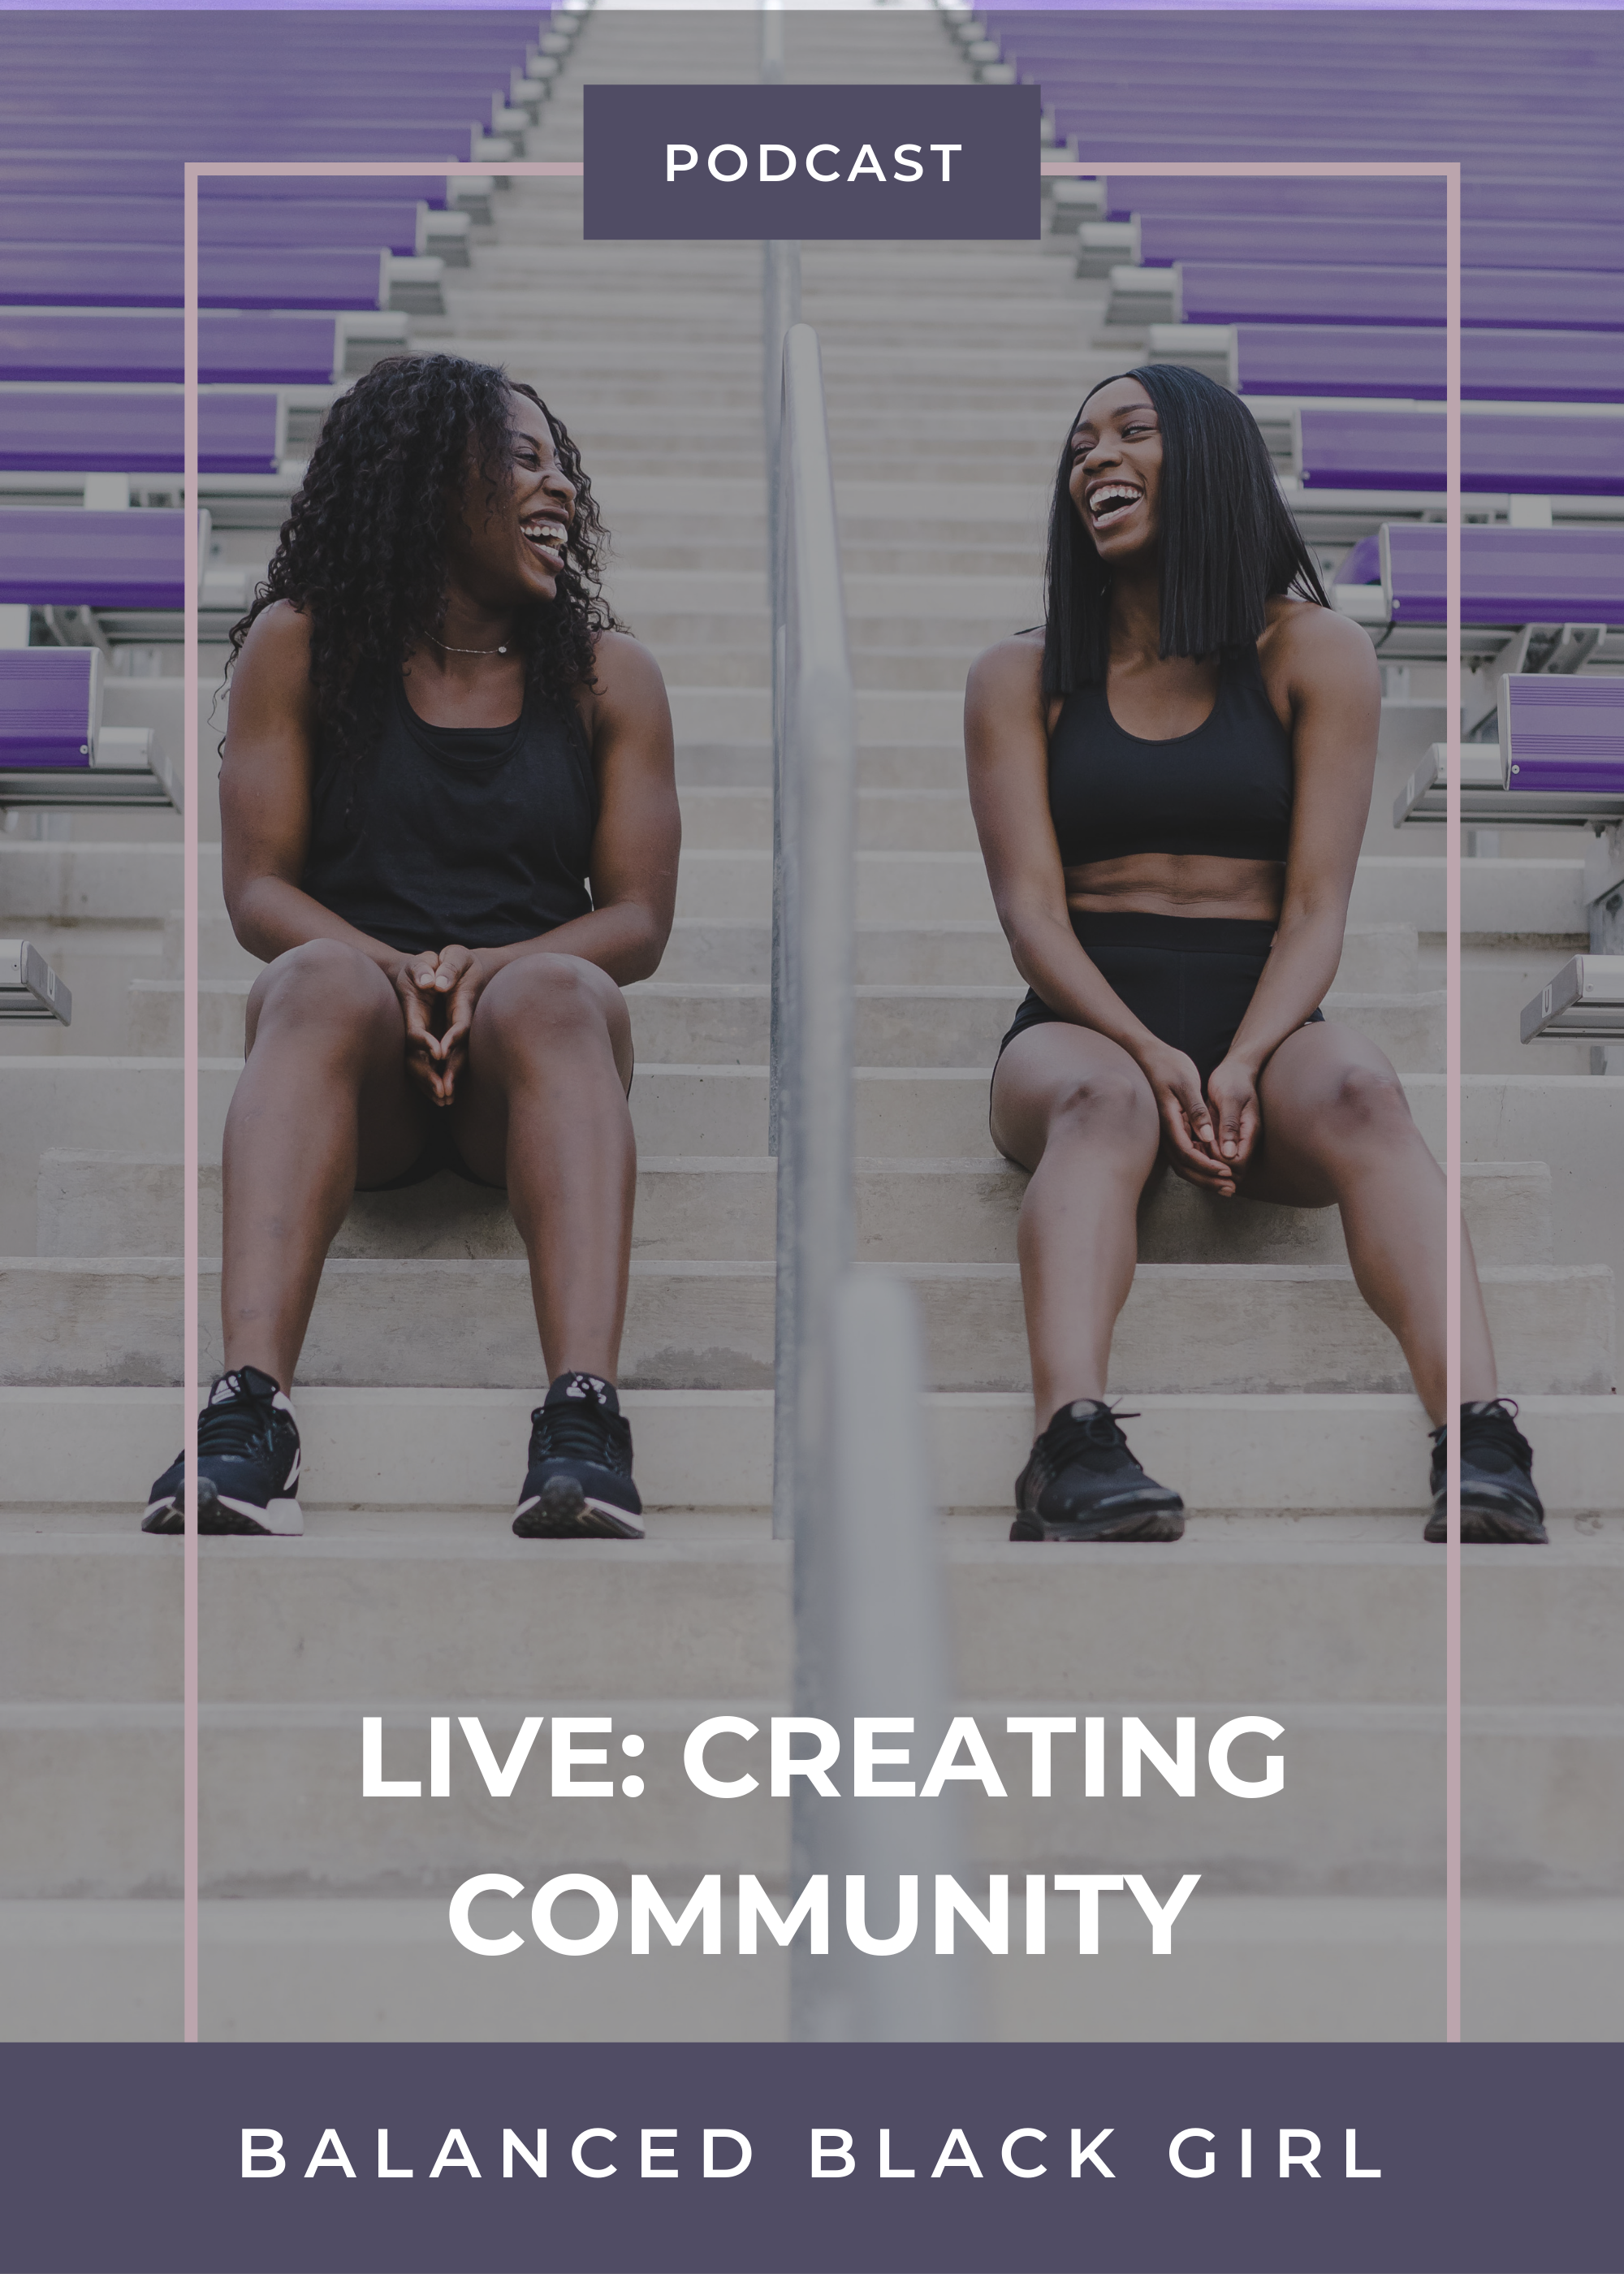 Episode 39: Balanced Black Girl Podcast LIVE - Creating Community